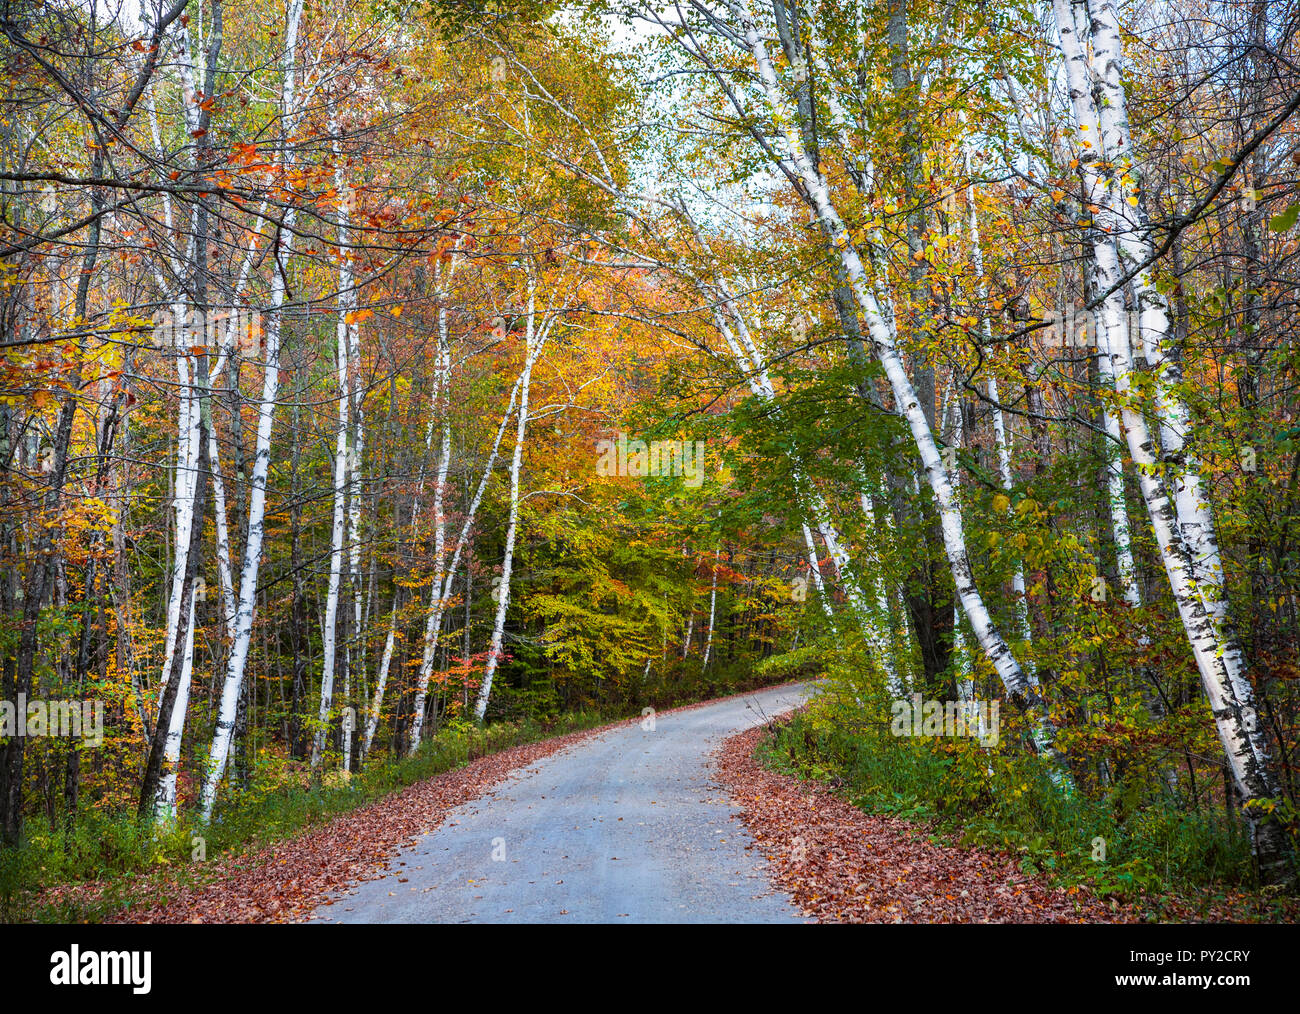 Autumn road in the Green Mountain National Park, Vermont, USa, New England fall - Stock Image